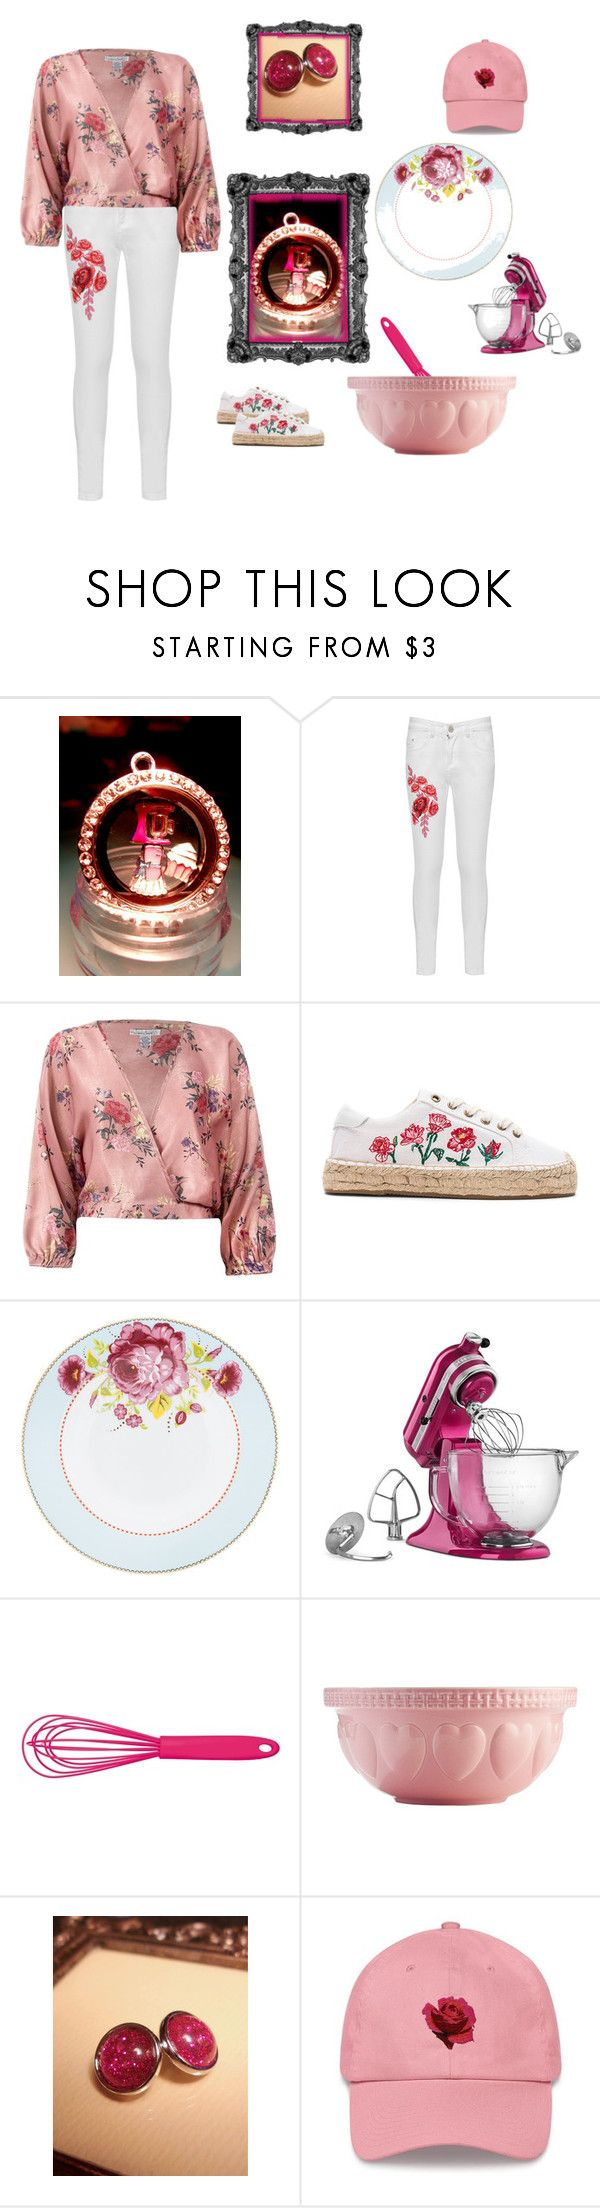 """Mix it Up"" by cozeequilts ❤ liked on Polyvore featuring WearAll, Sans Souci, Soludos, PiP Studio, KitchenAid, Kitchen Craft Colourworks and Mason Cash"